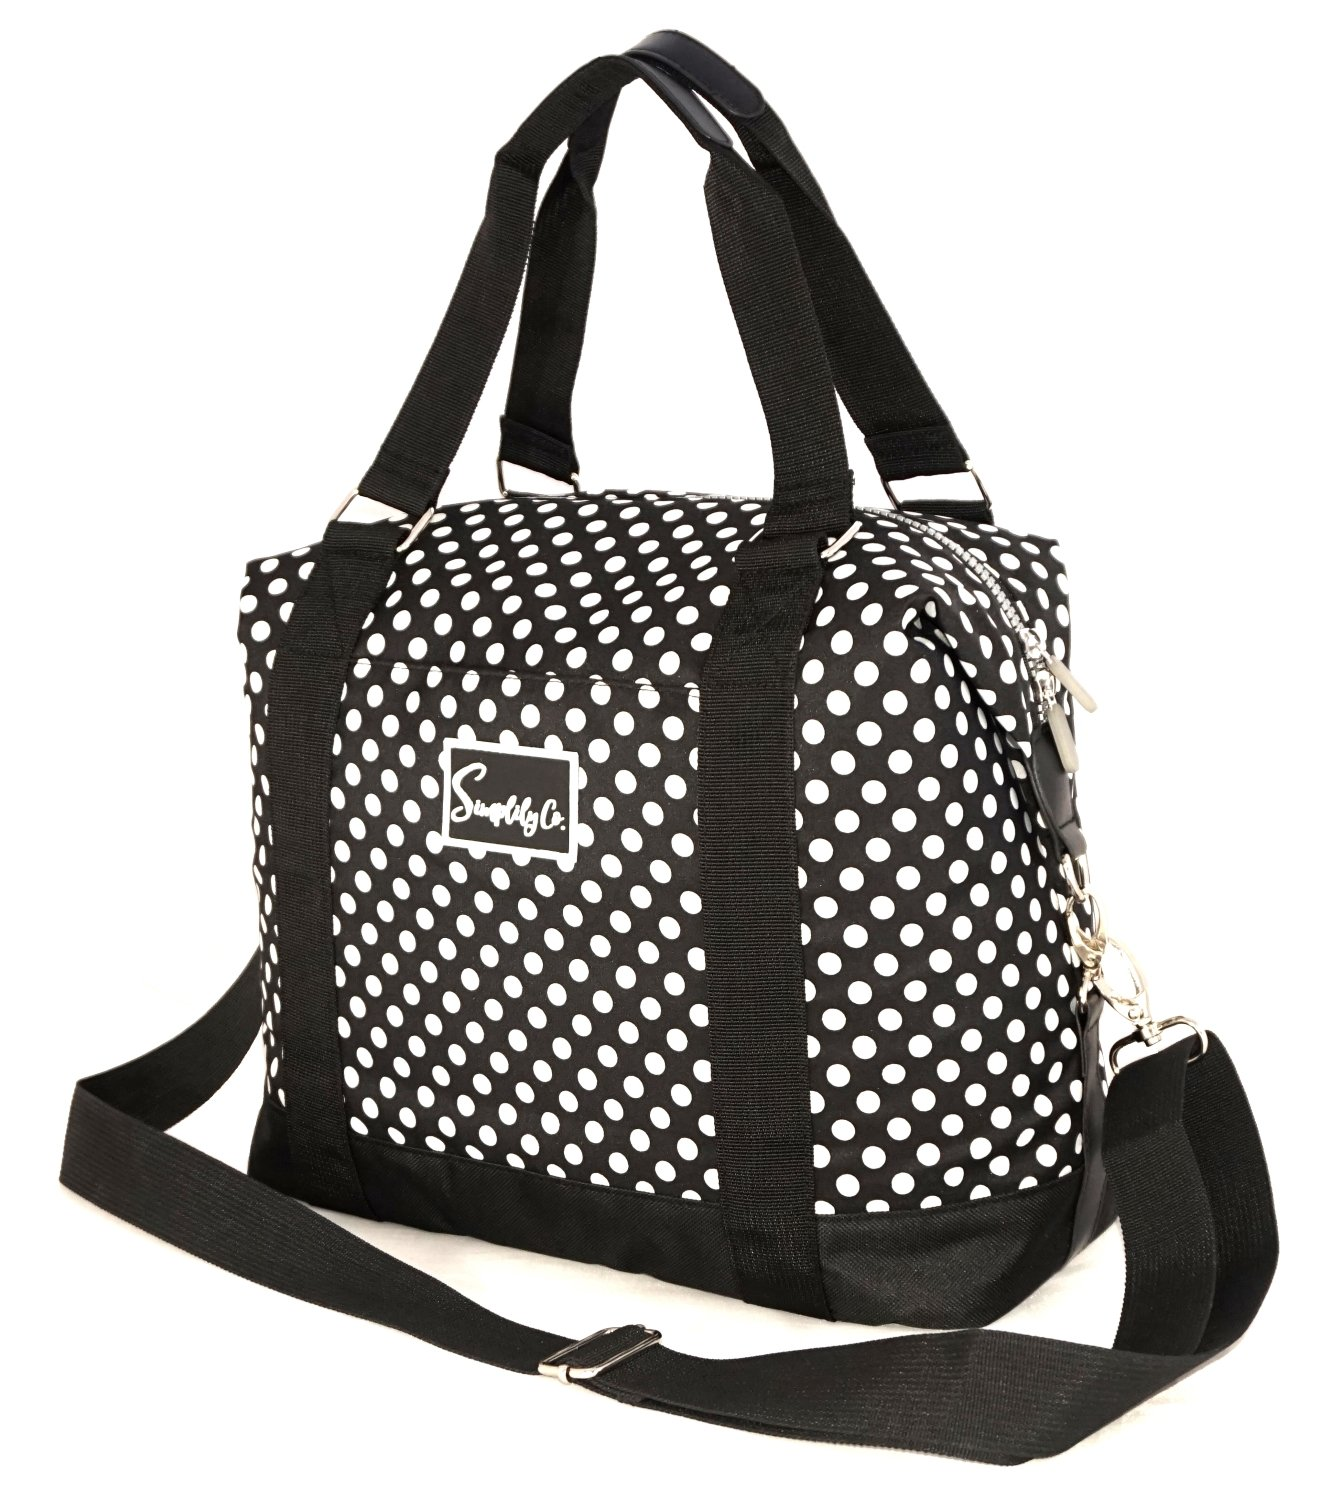 Travel Weekender Overnight Carry-on Under the Seat Shoulder Tote Bag (Small, Black & White Polka Dot)